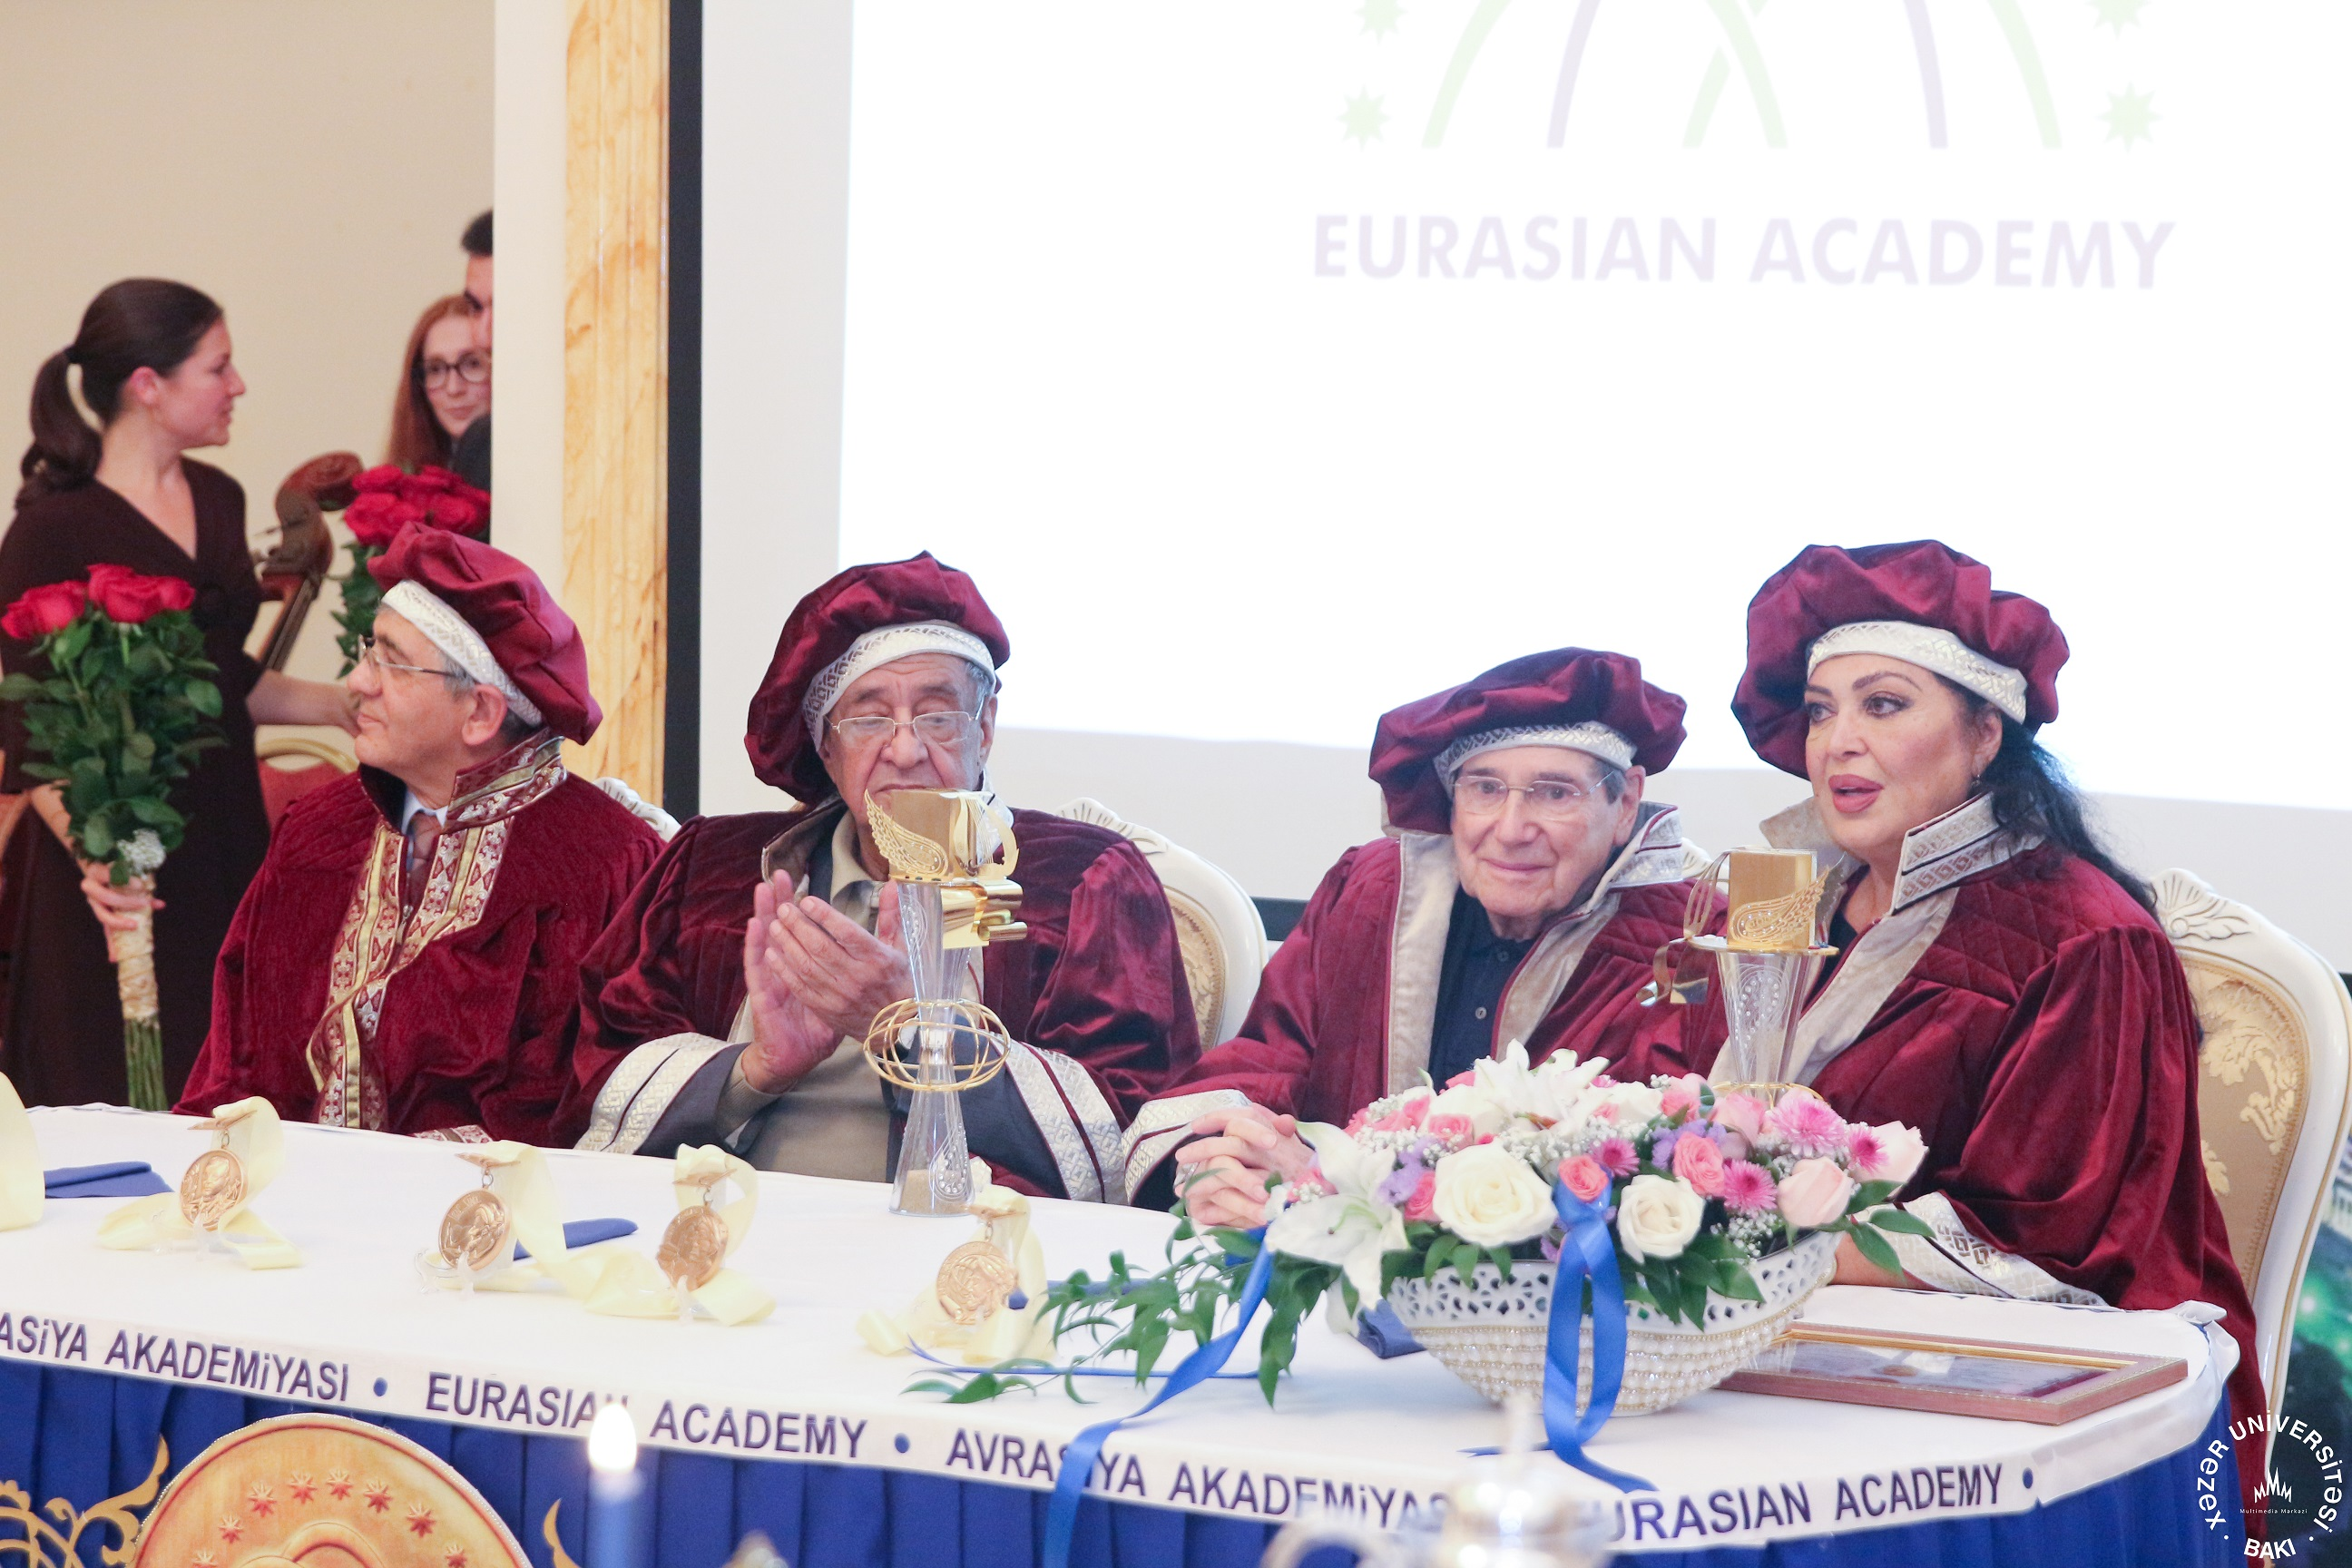 The ceremony was broadcast live on Khazar University's internet television and was reported broadly by Azerbaijani and Turkish media.